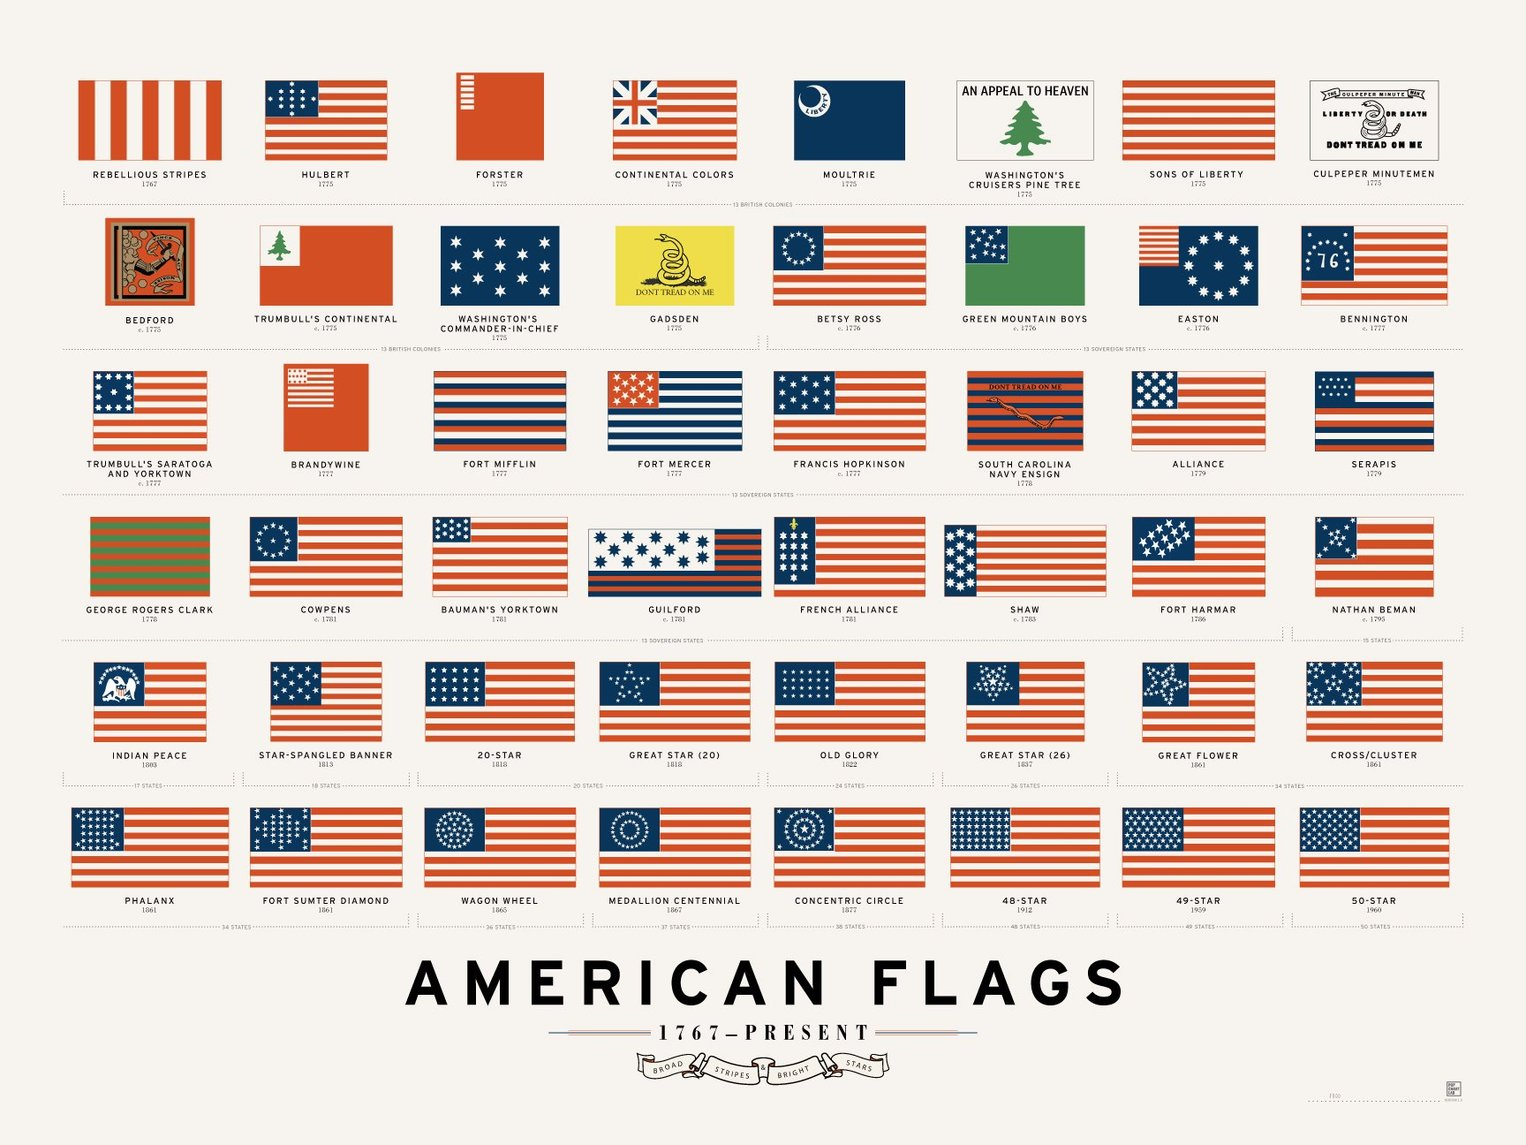 American Flags 1767-Present